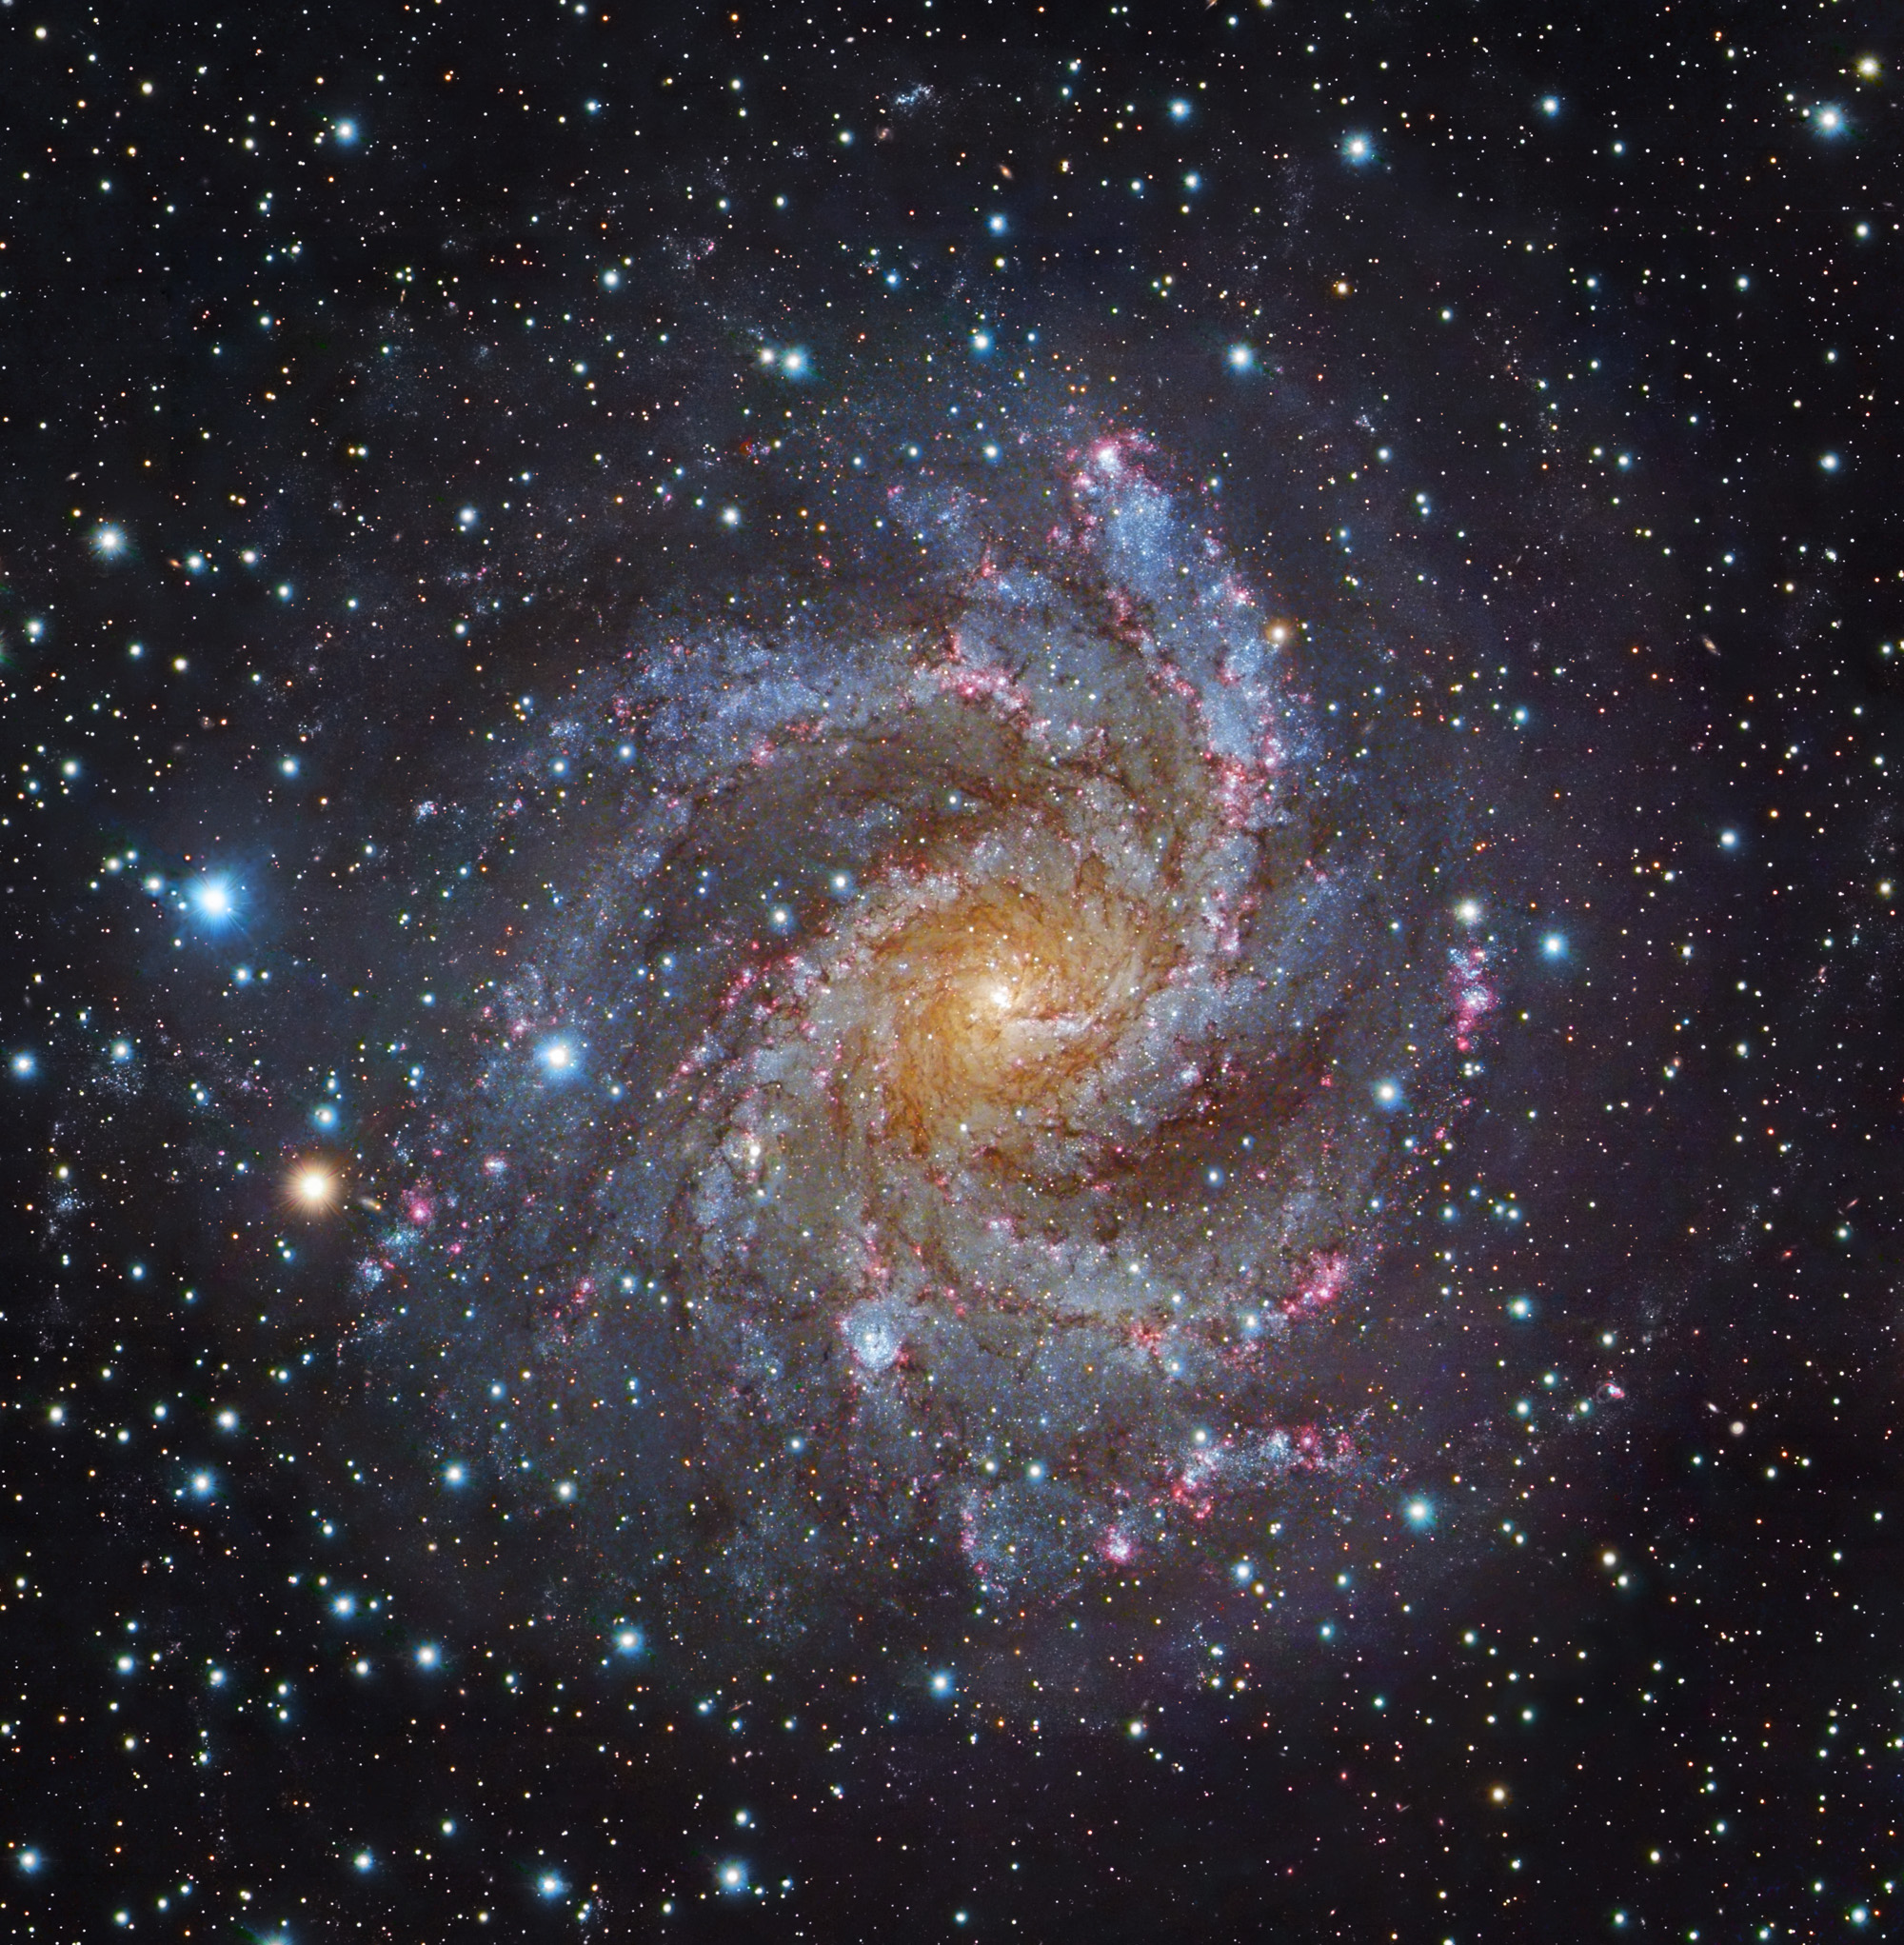 Image of Spiral galaxy, which looks like arms spinning around the center, NGC 6332.